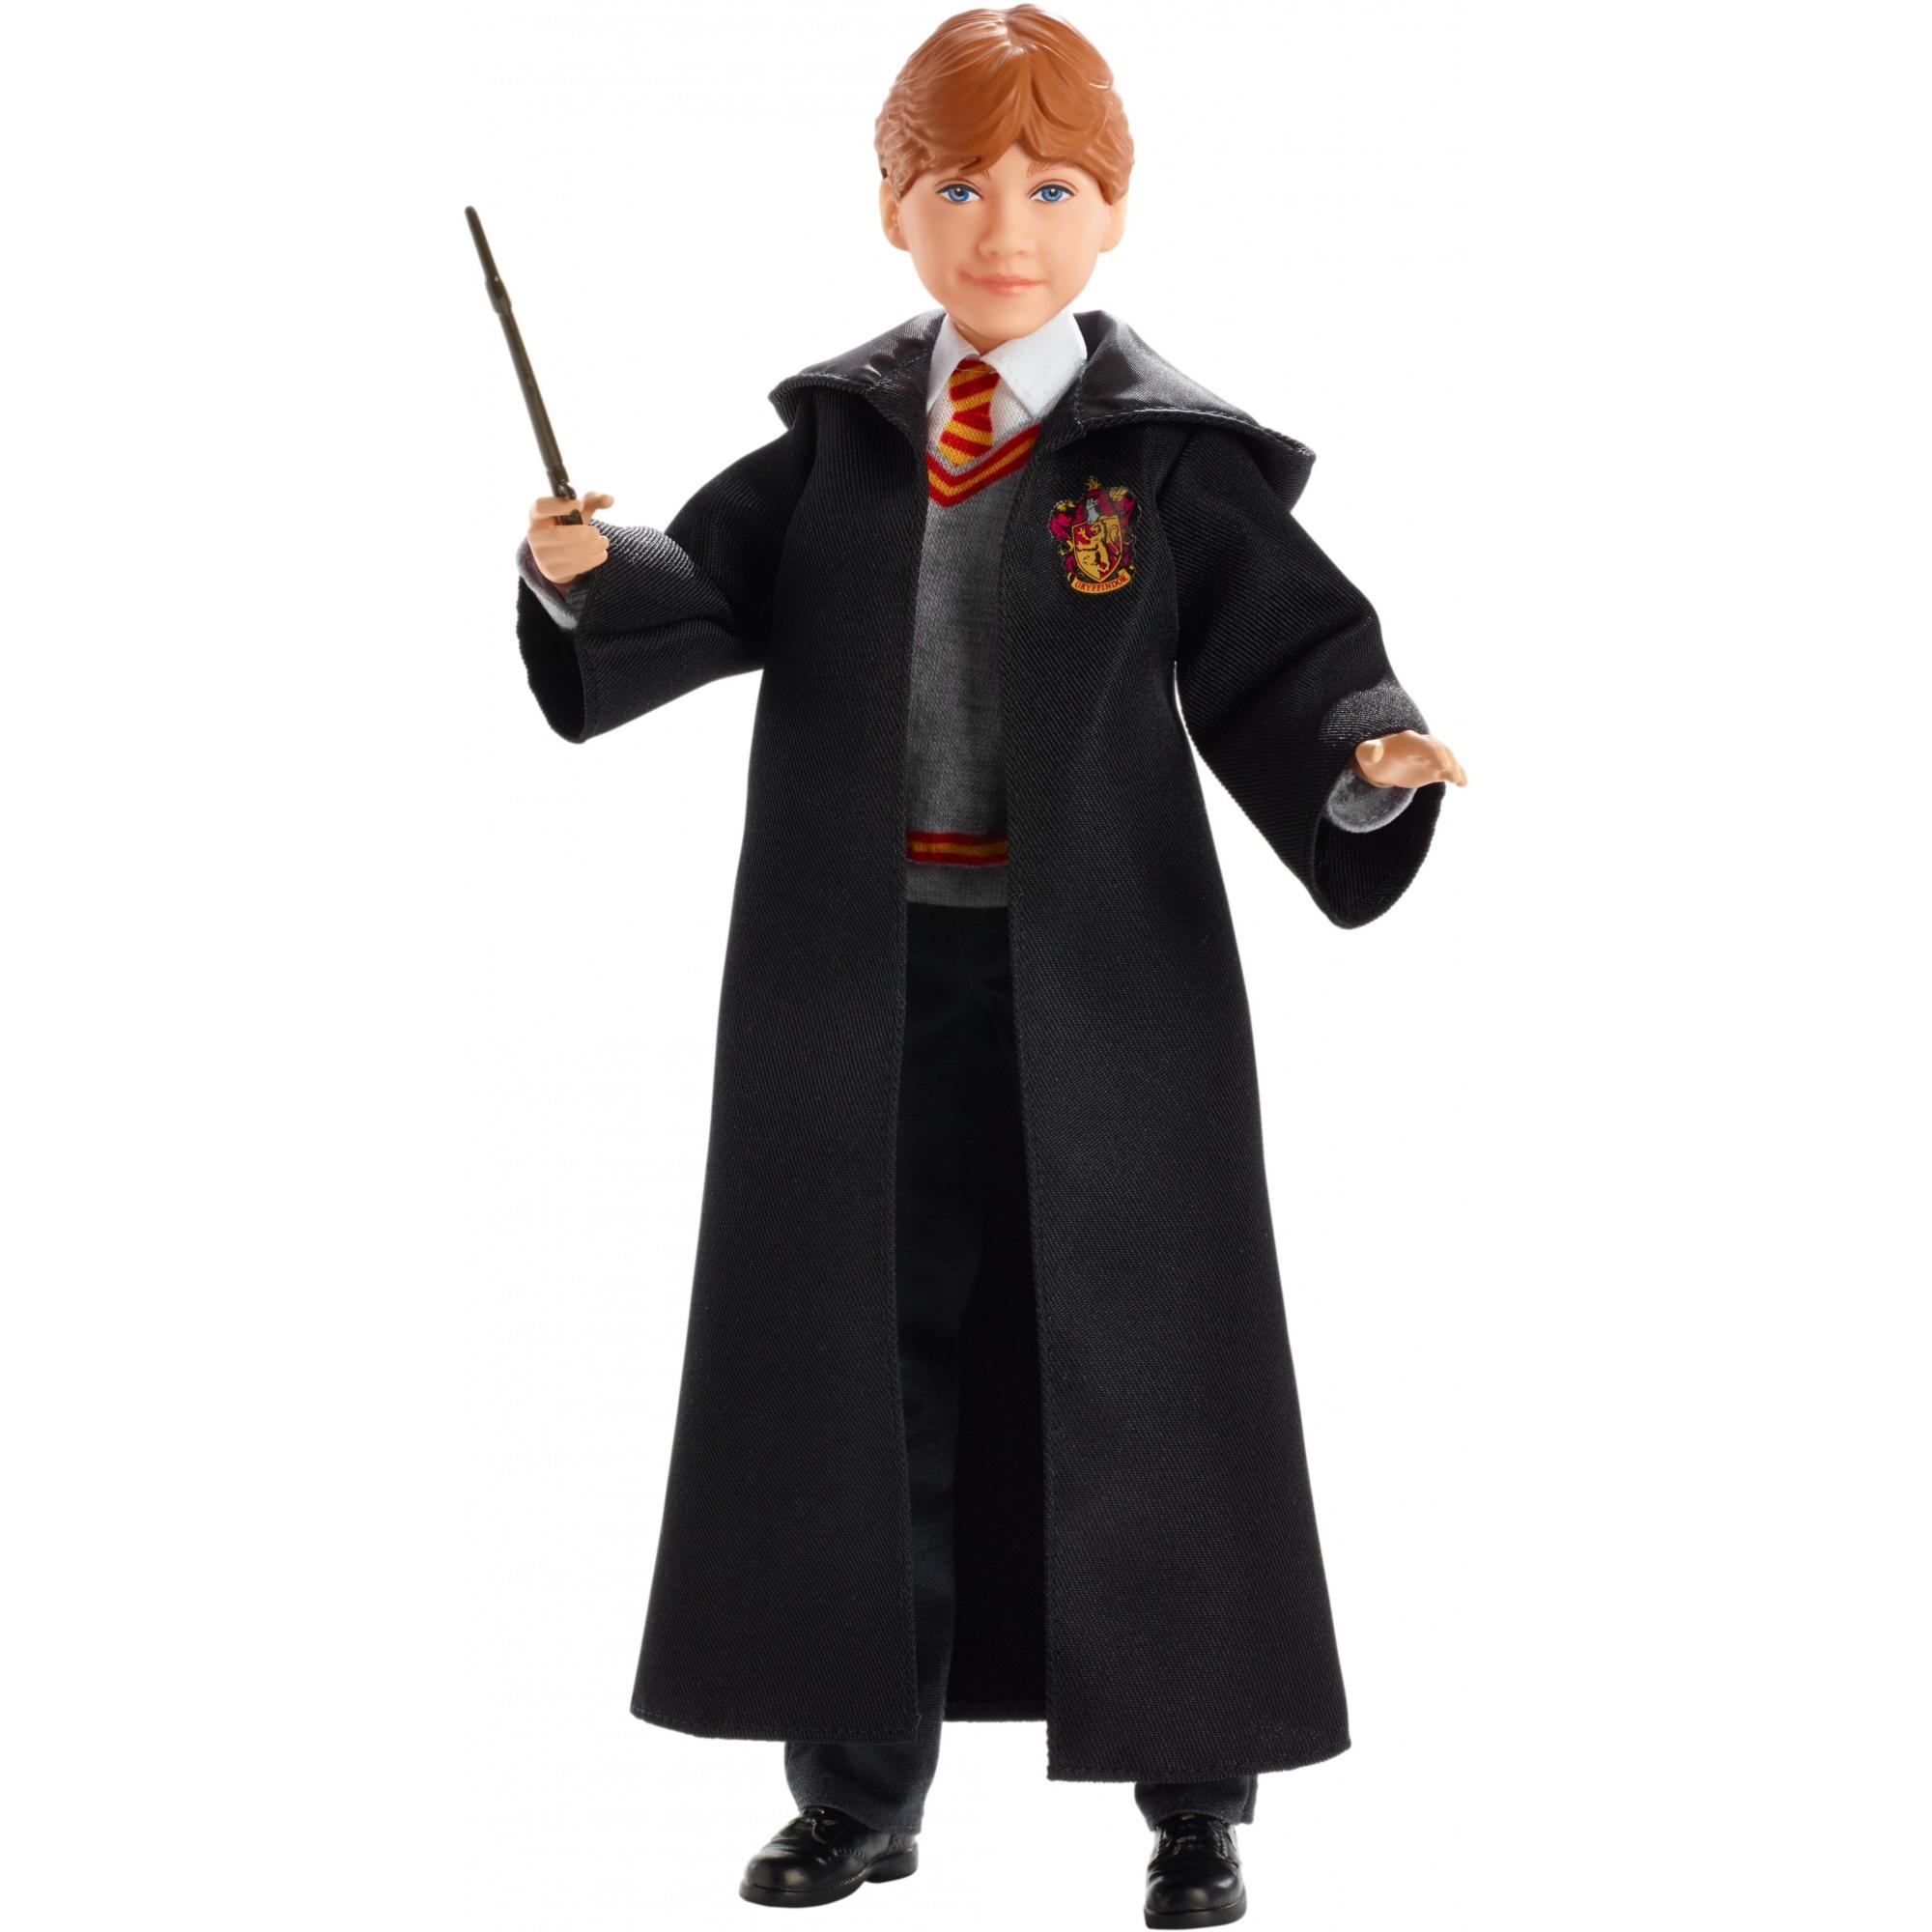 Harry Potter Ron Weasley Film-Inspired Collector Doll